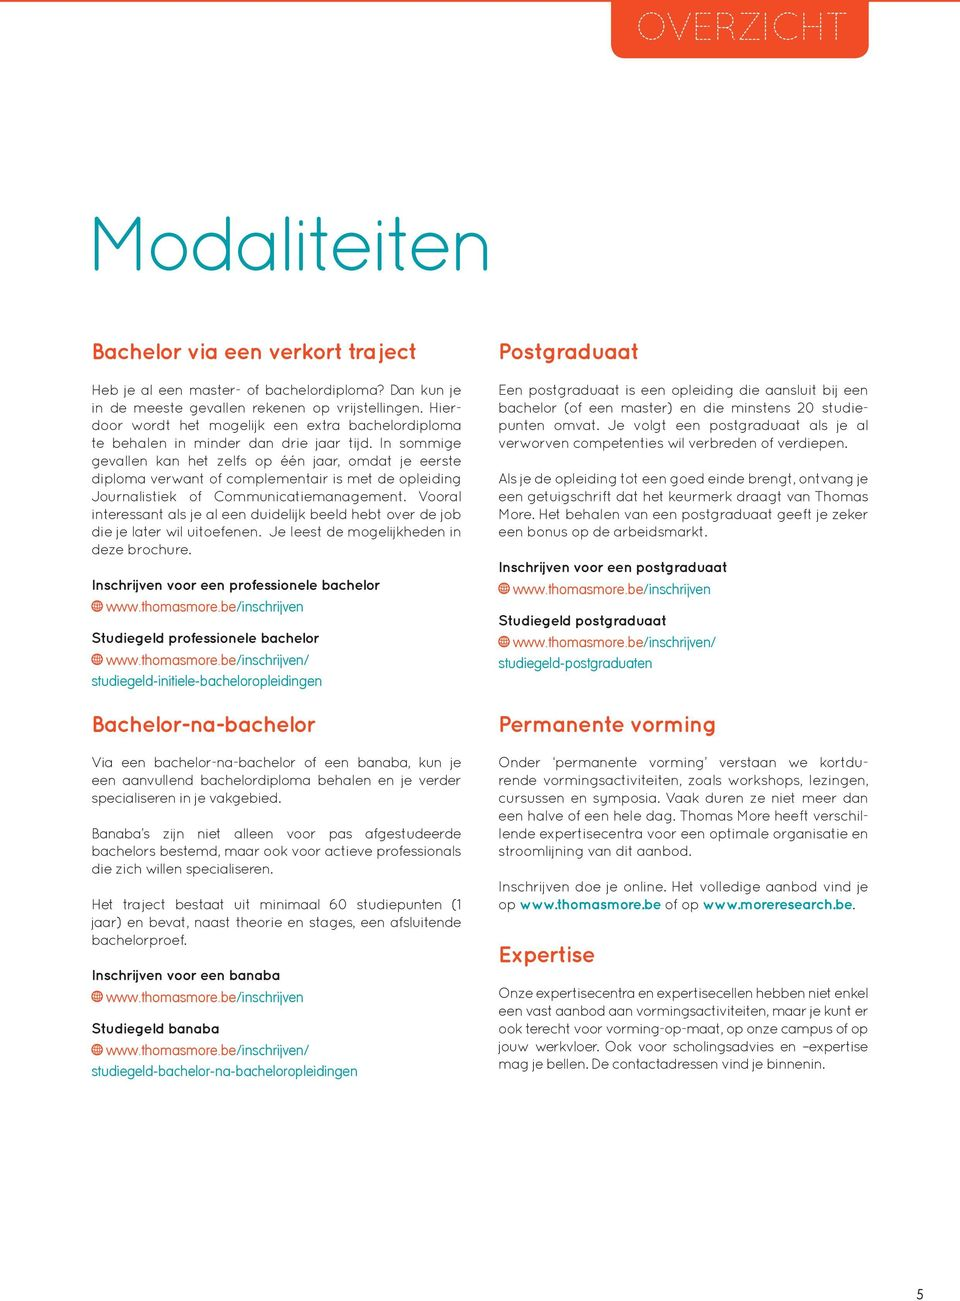 In sommige gevallen kan het zelfs op één jaar, omdat je eerste diploma verwant of complementair is met de opleiding Journalistiek of Communicatiemanagement.